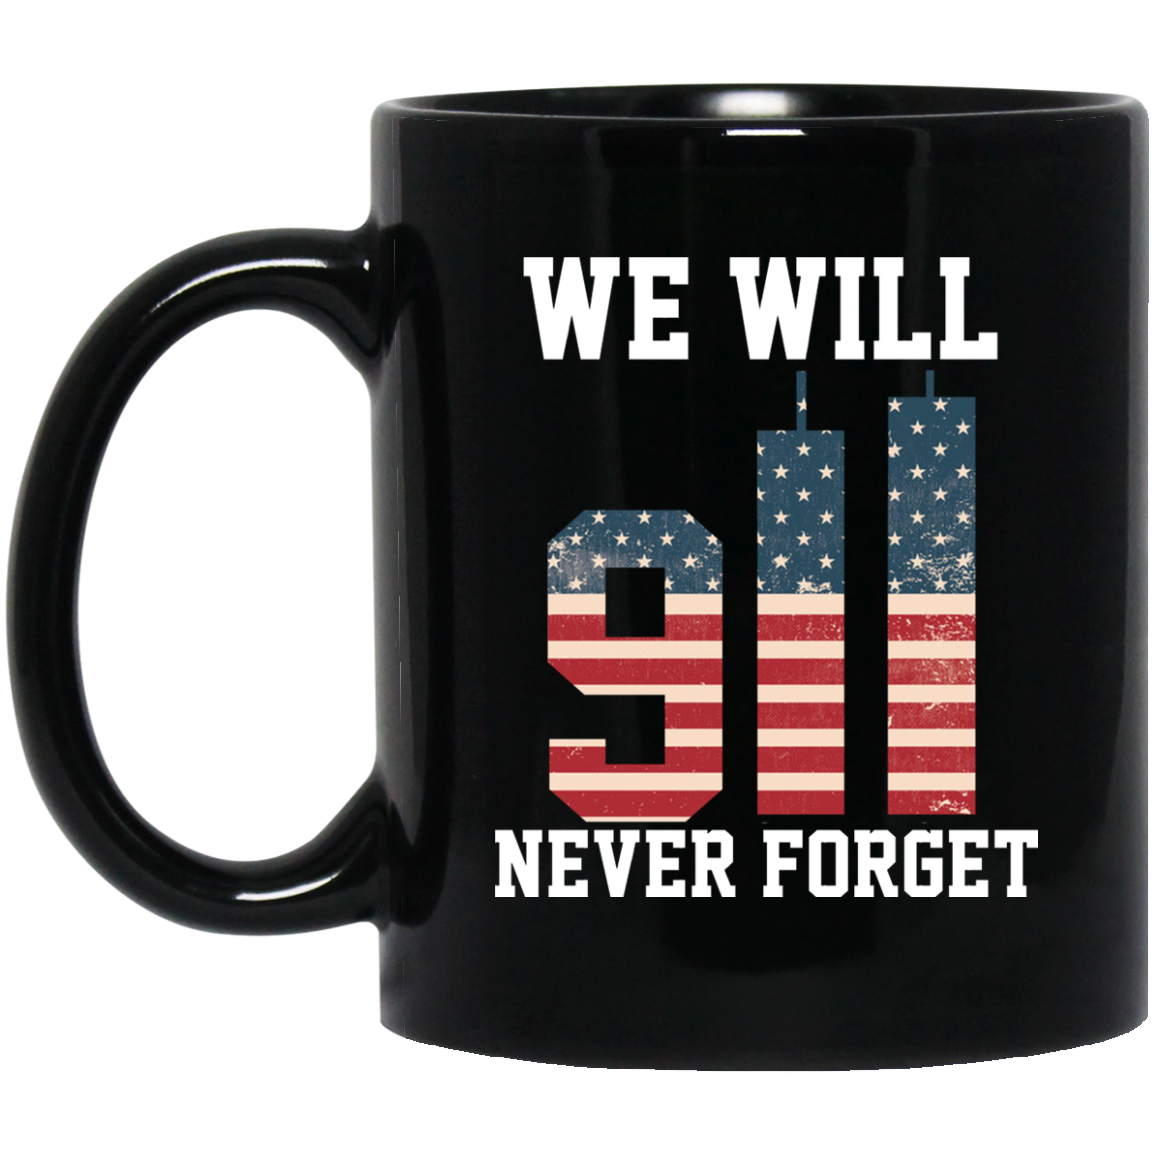 We Will Never Forget 911 Mug American Memorial Flag